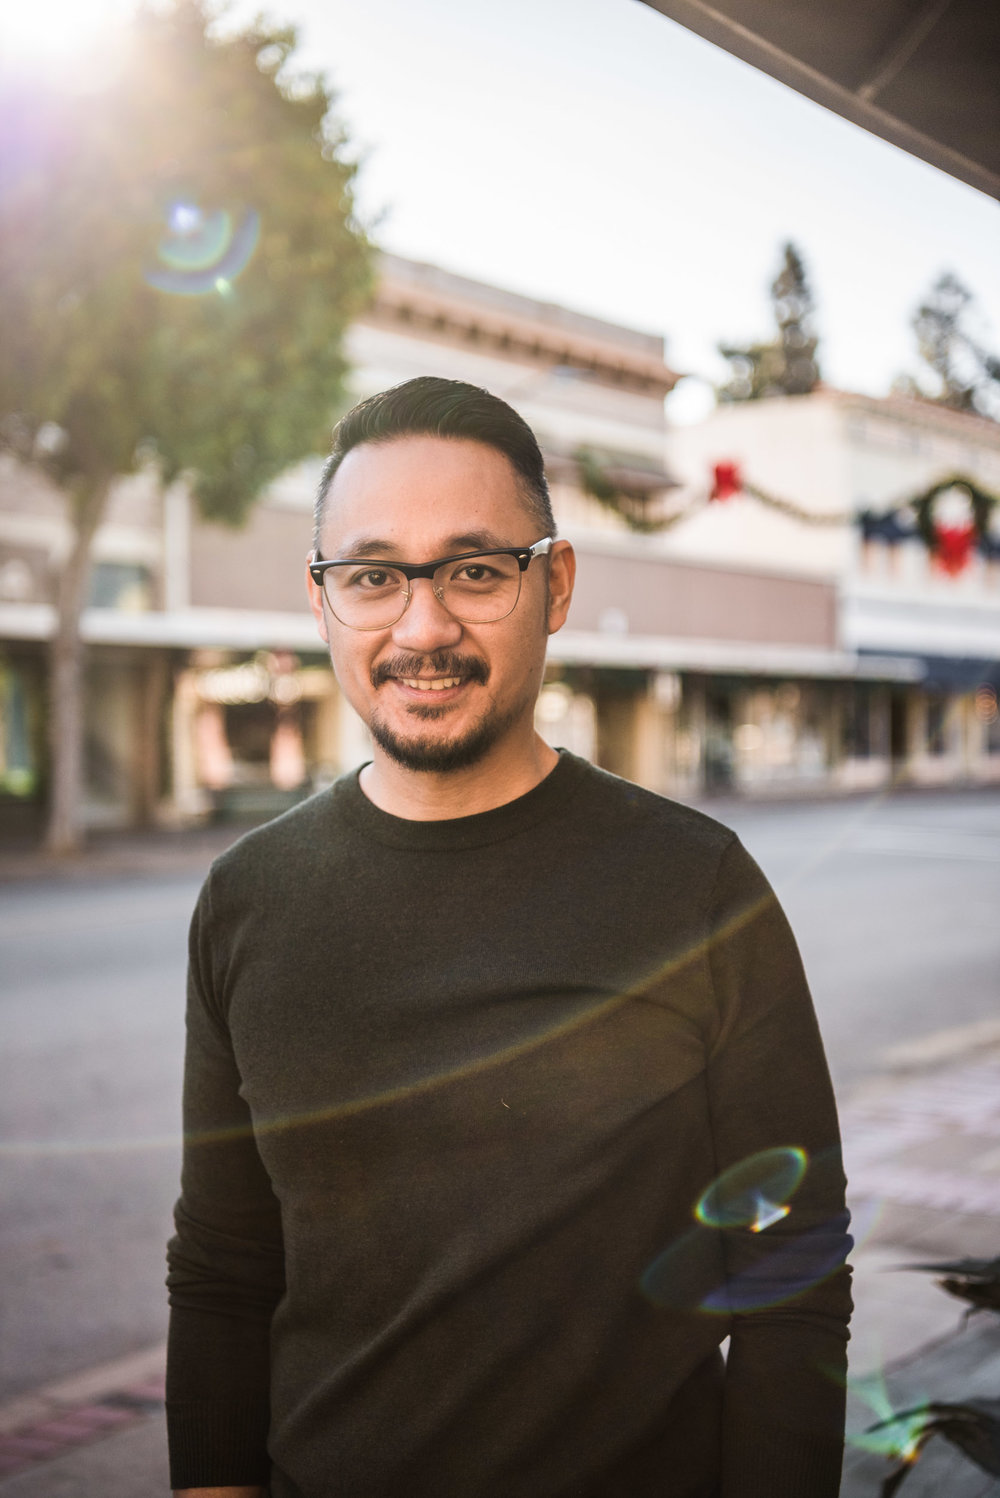 Lisa Hu Chen | man in glasses bathed in sunlight smiles while standing in the middle of the street in Old Town Orange